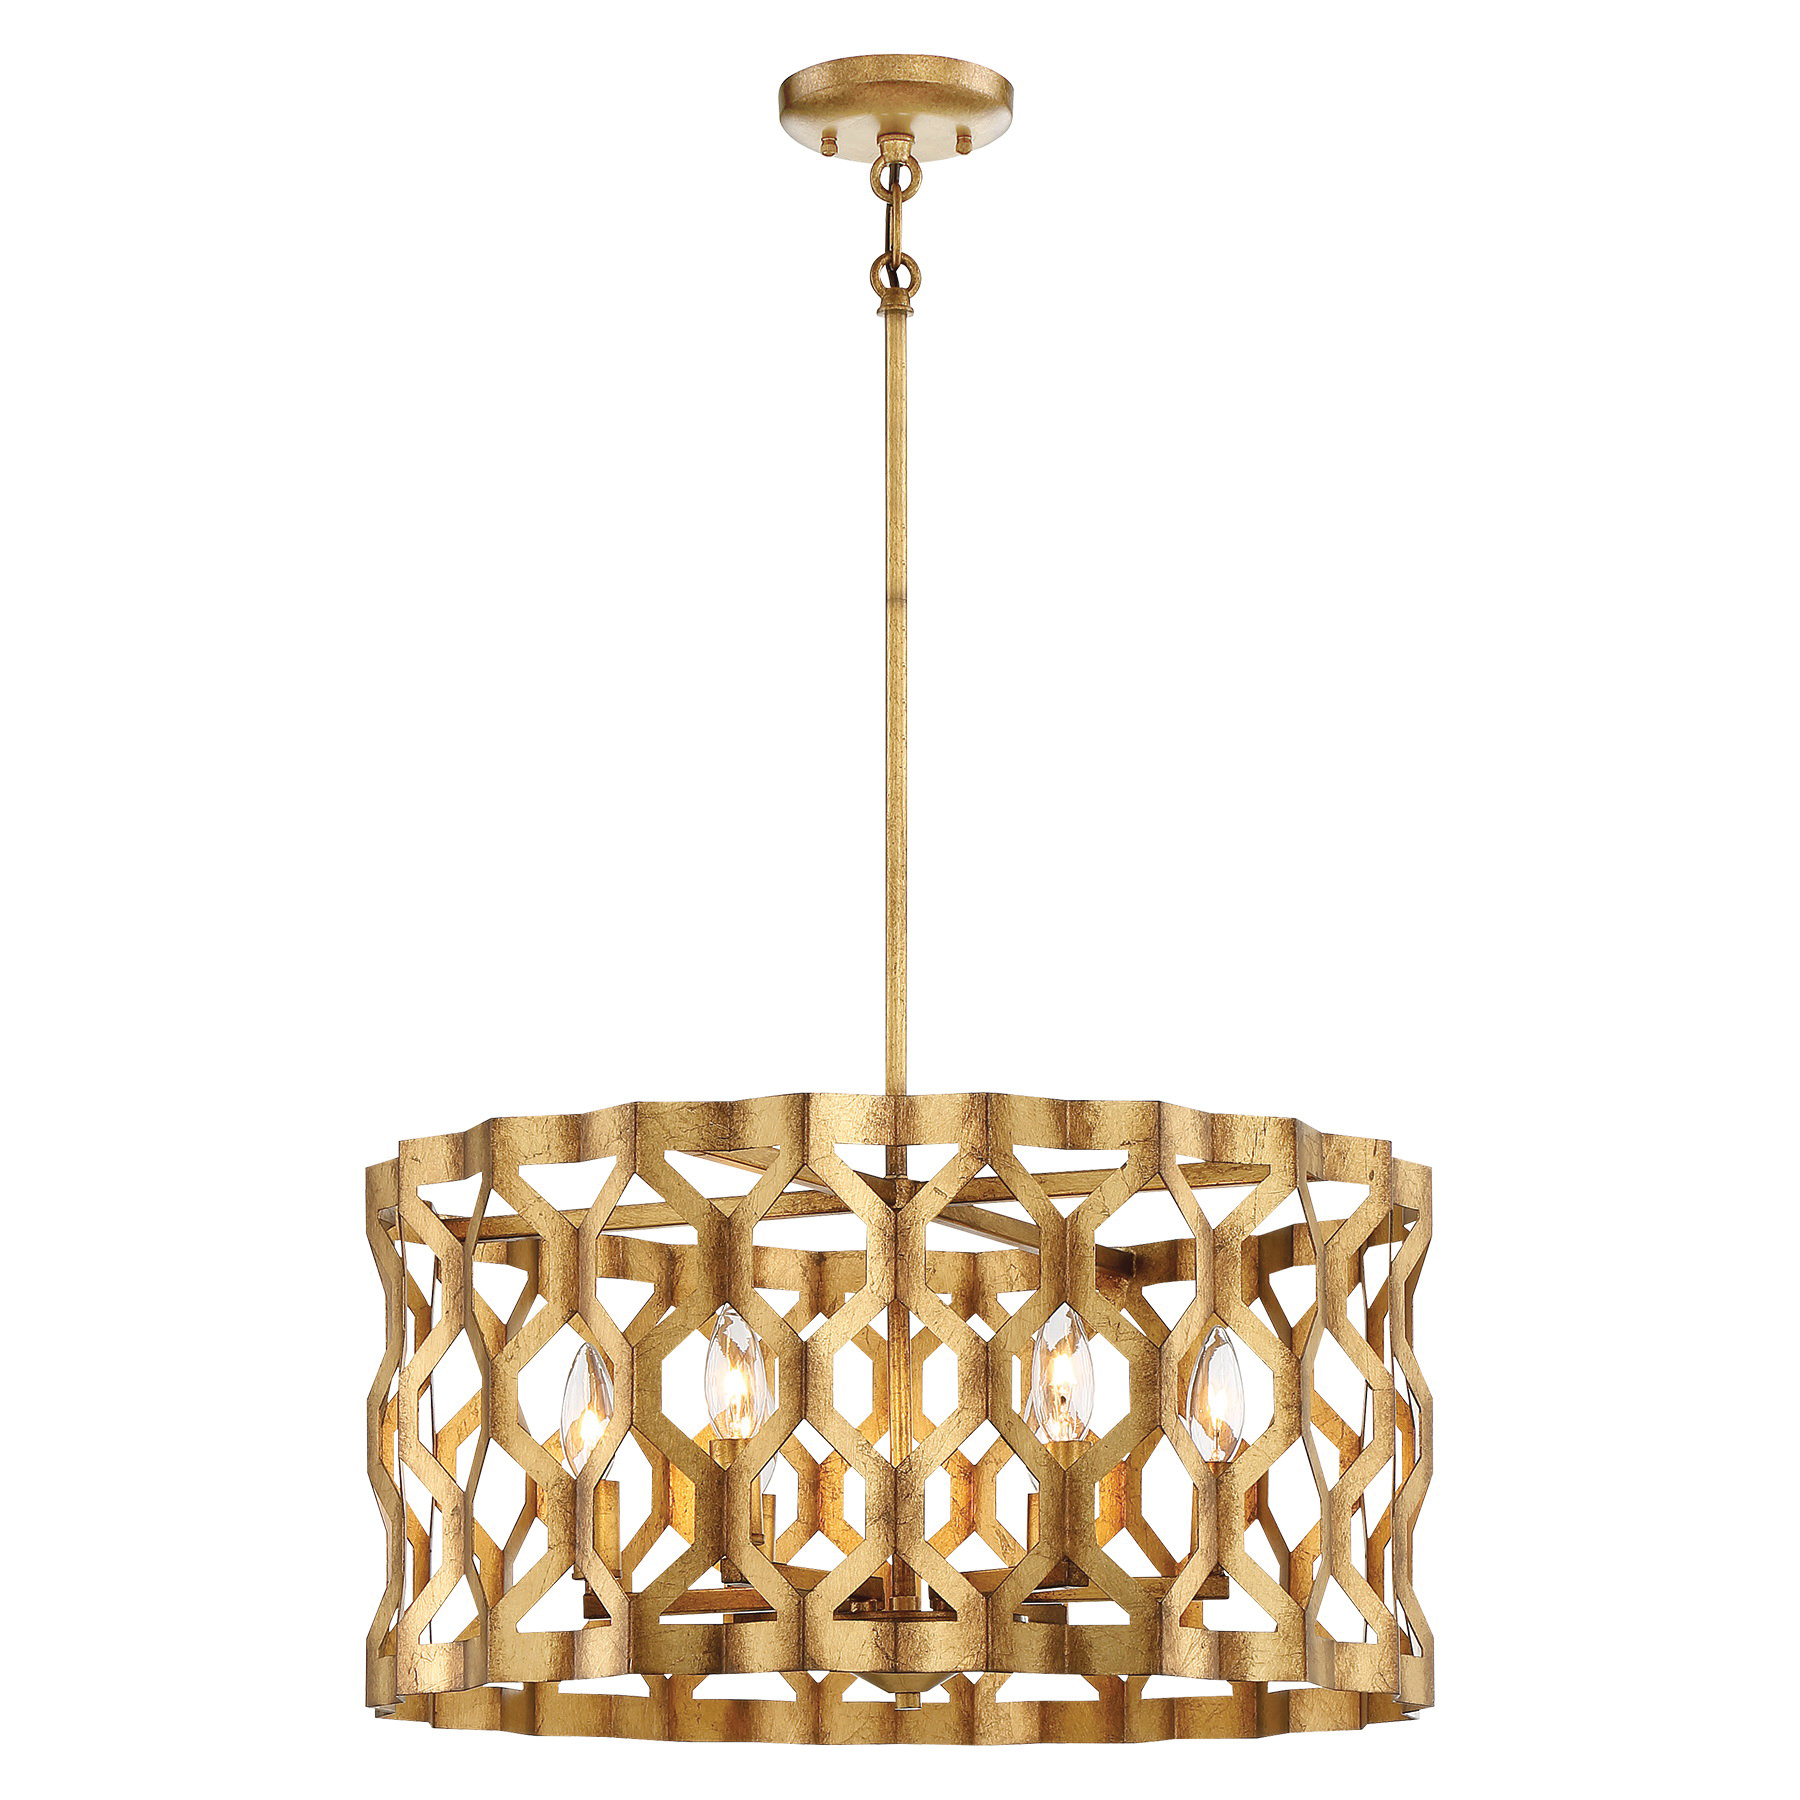 Metropolitan Lighting N6775 293 5 Light Pendant Fixture 60 Watt Pandora Gold Leaf Coronade